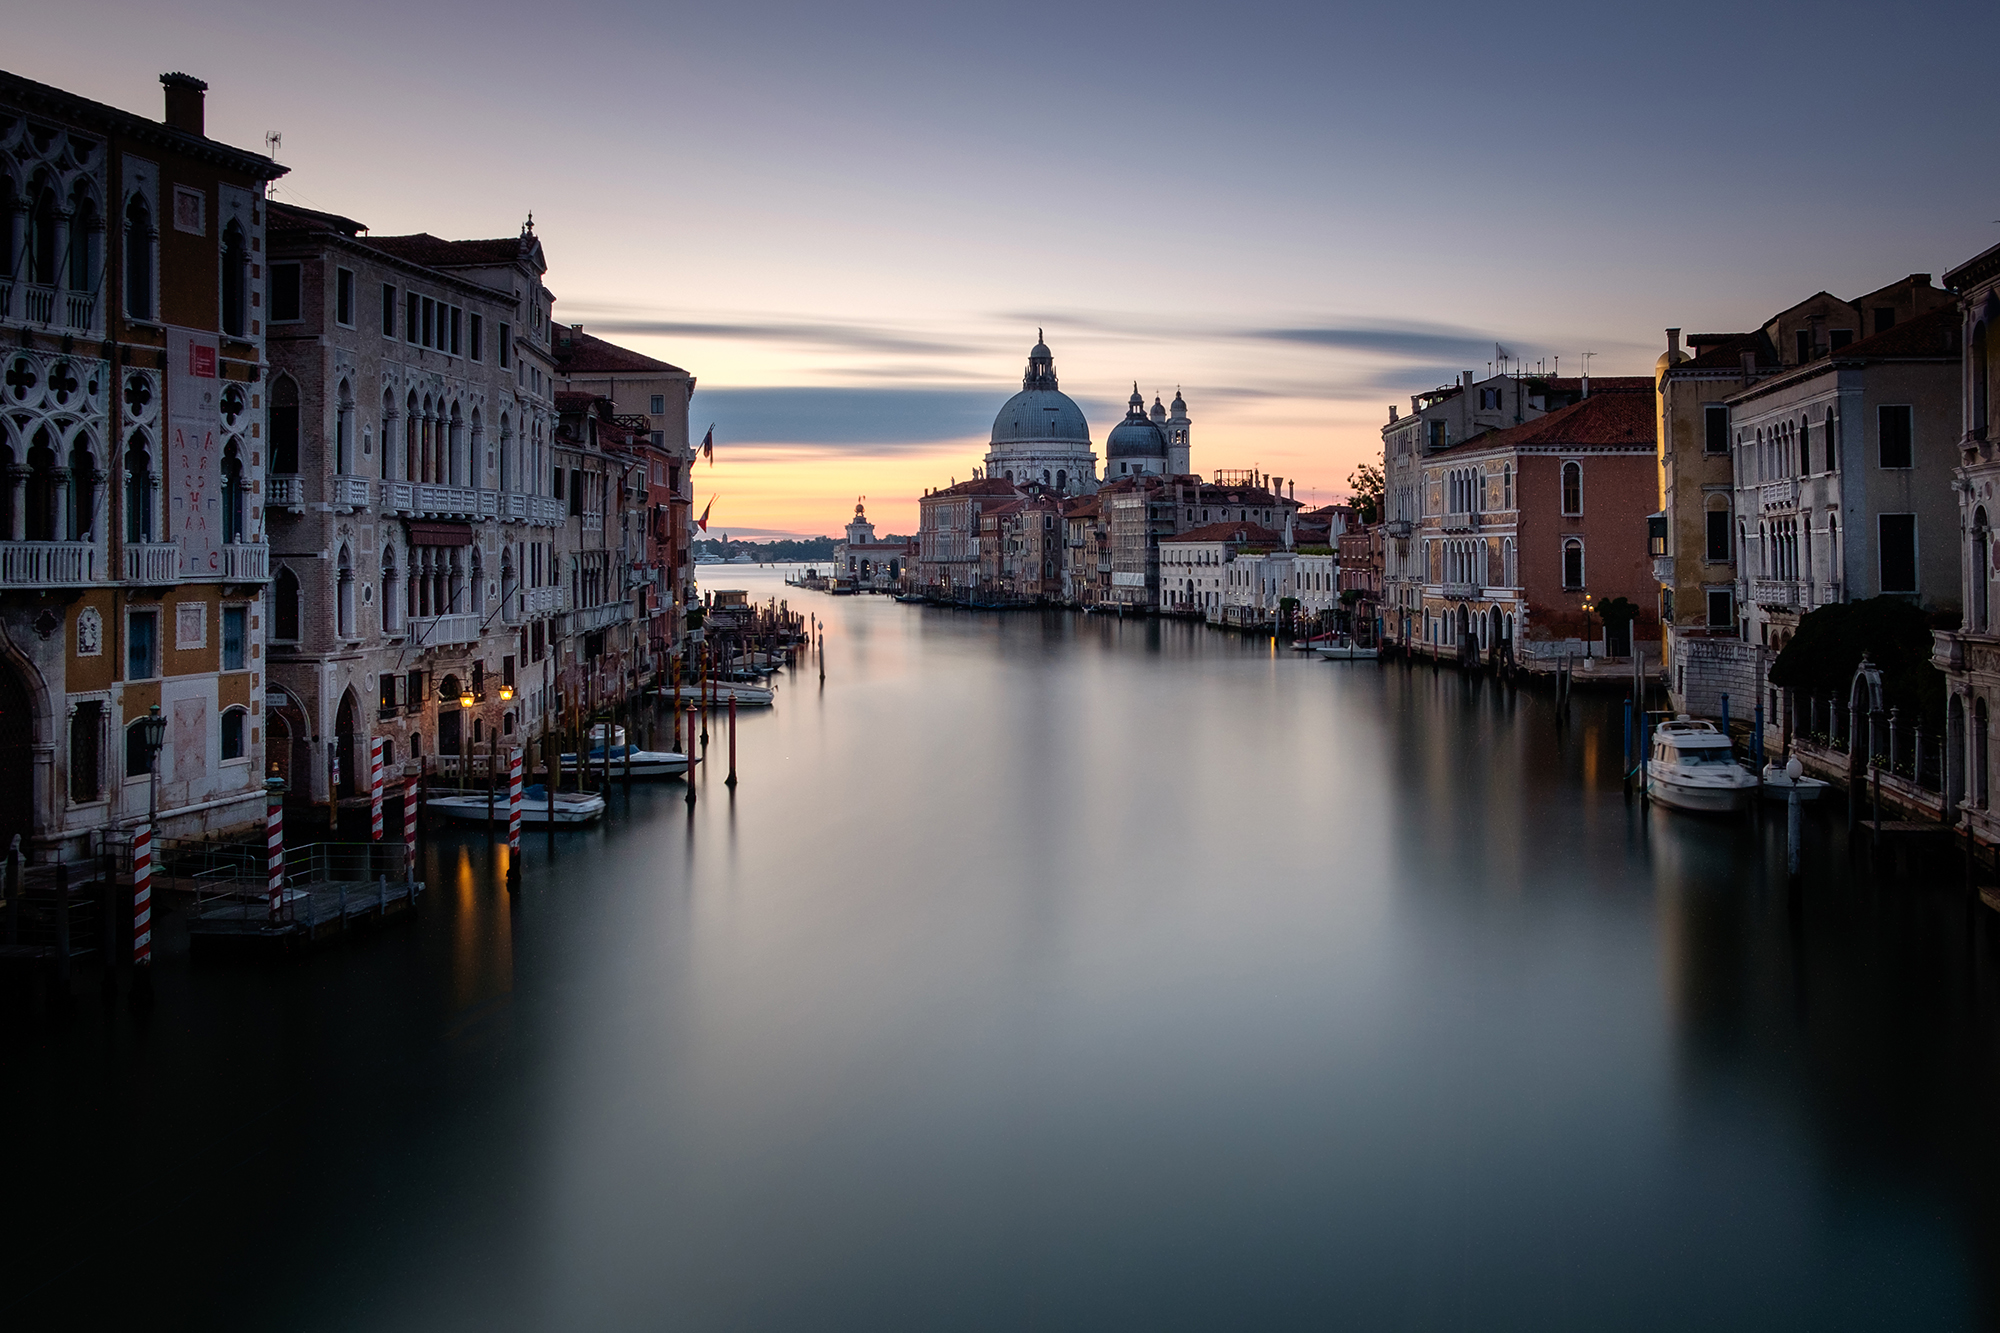 Sunrise at the Grand Canal III, Venice